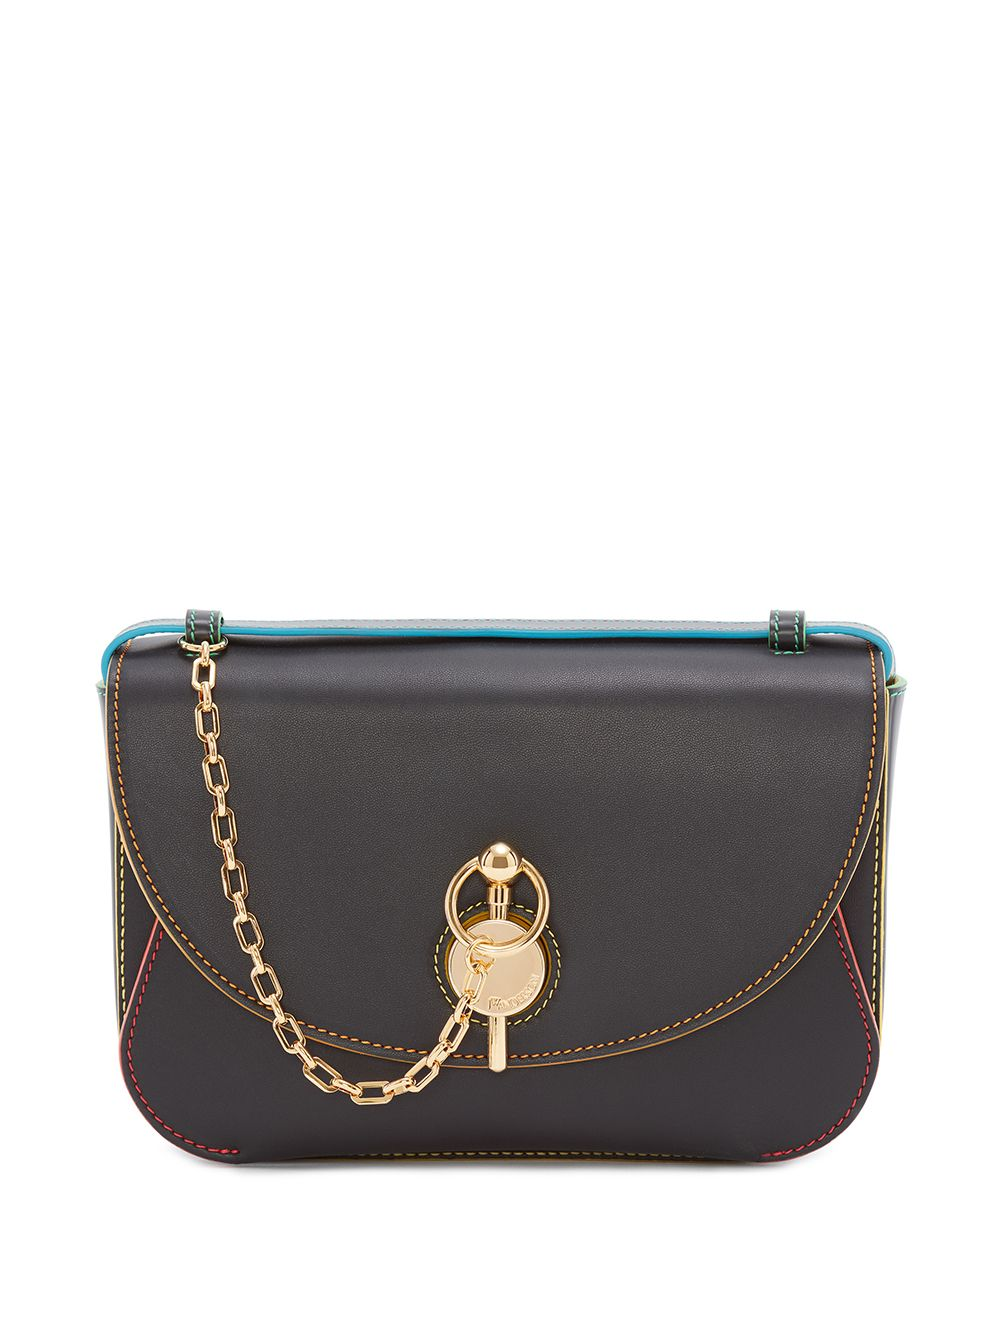 JW ANDERSON WOMEN KEYTS BAG